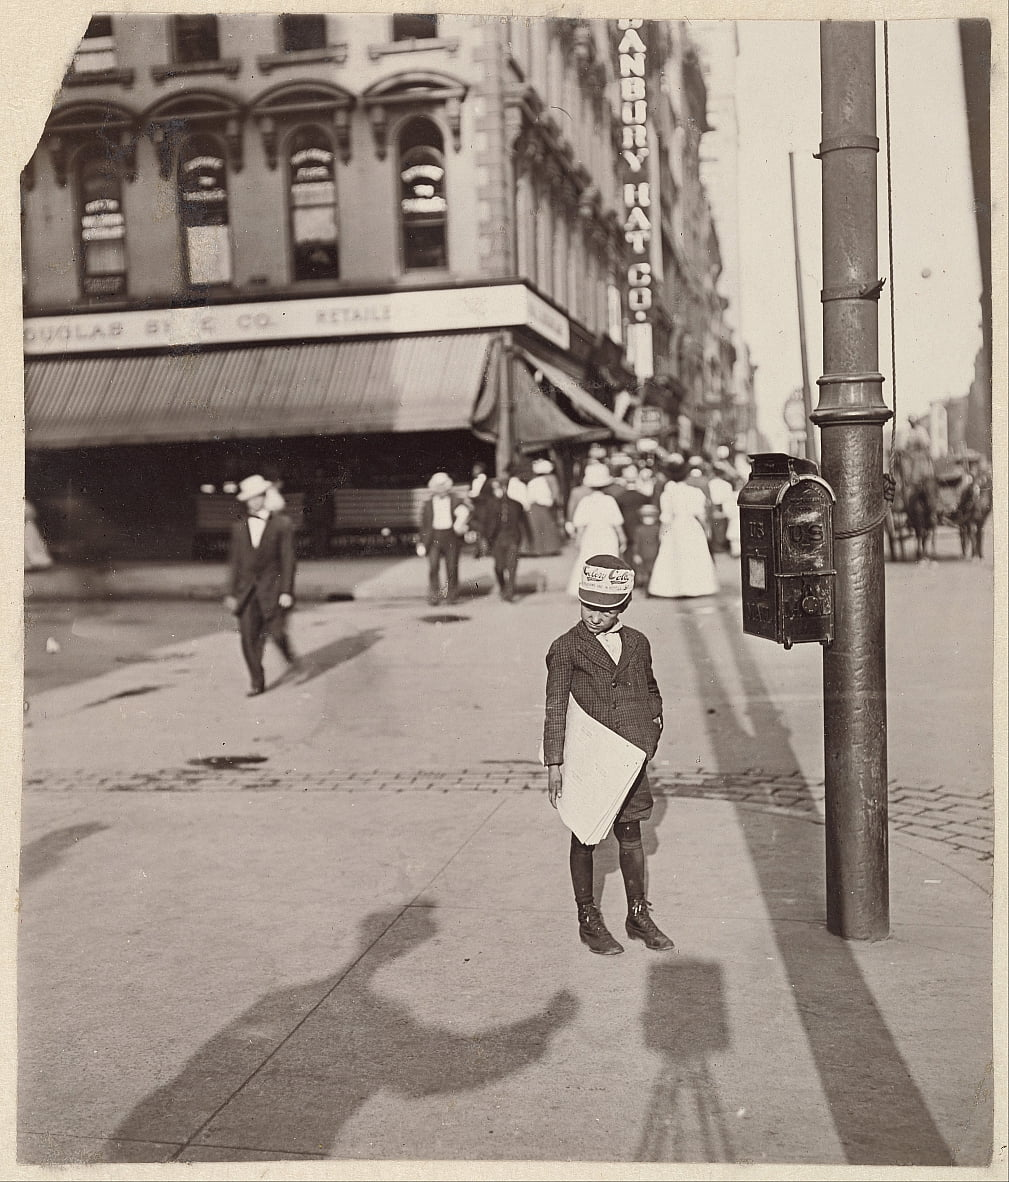 Self-Portrait with Newsboy by Lewis Wickes Hine